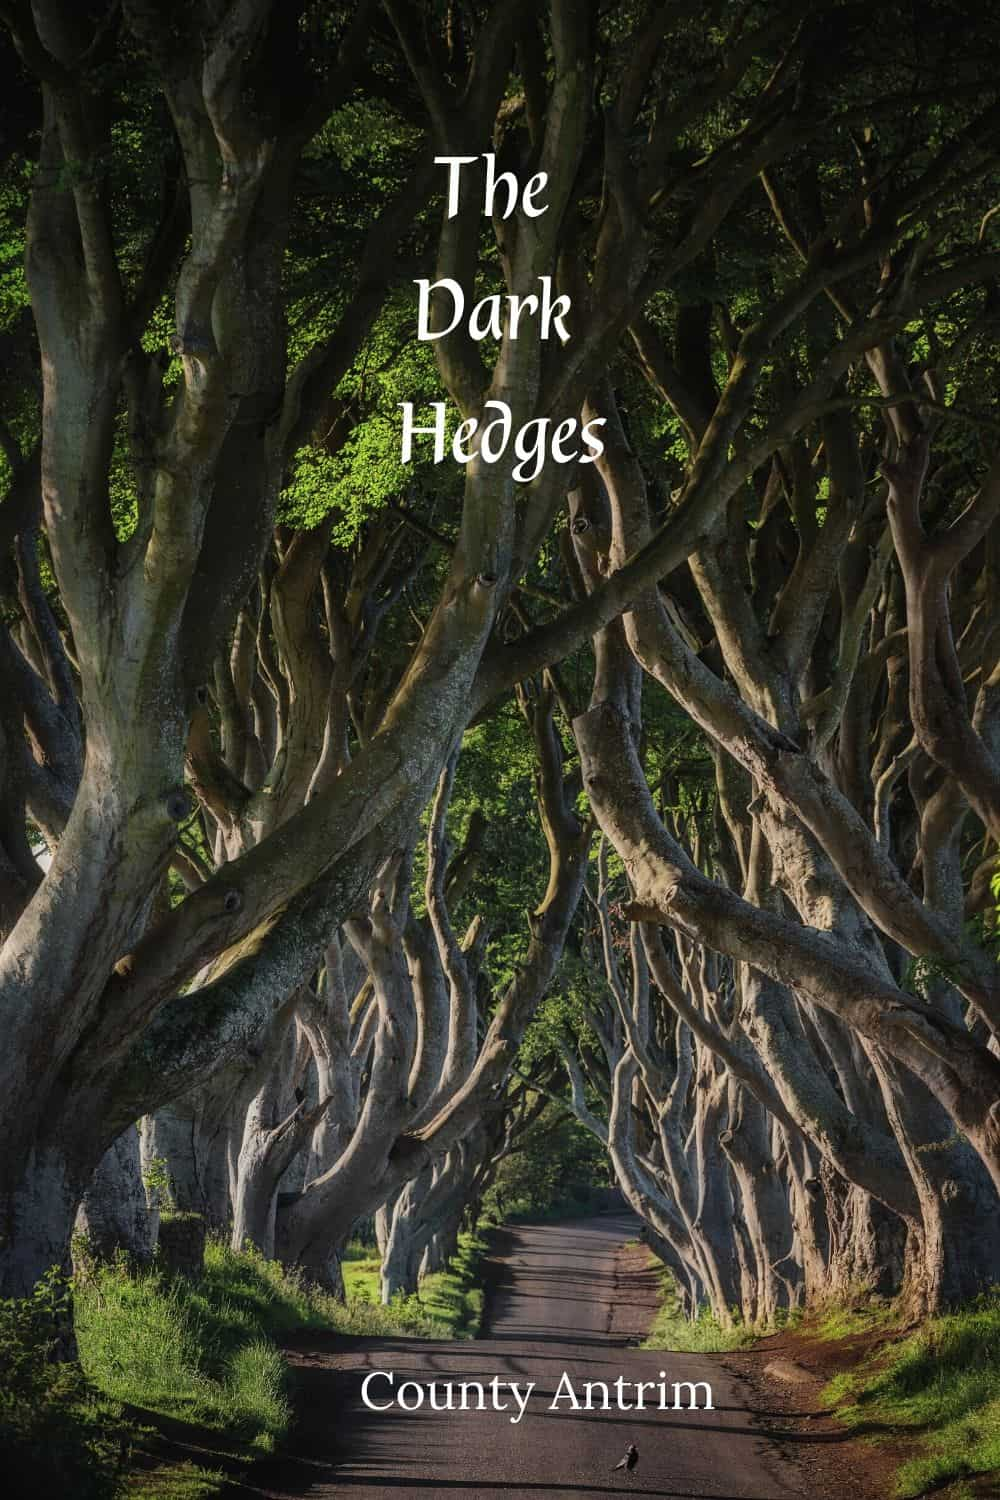 The Dark Hedges provide a cover of trees over and Irish road